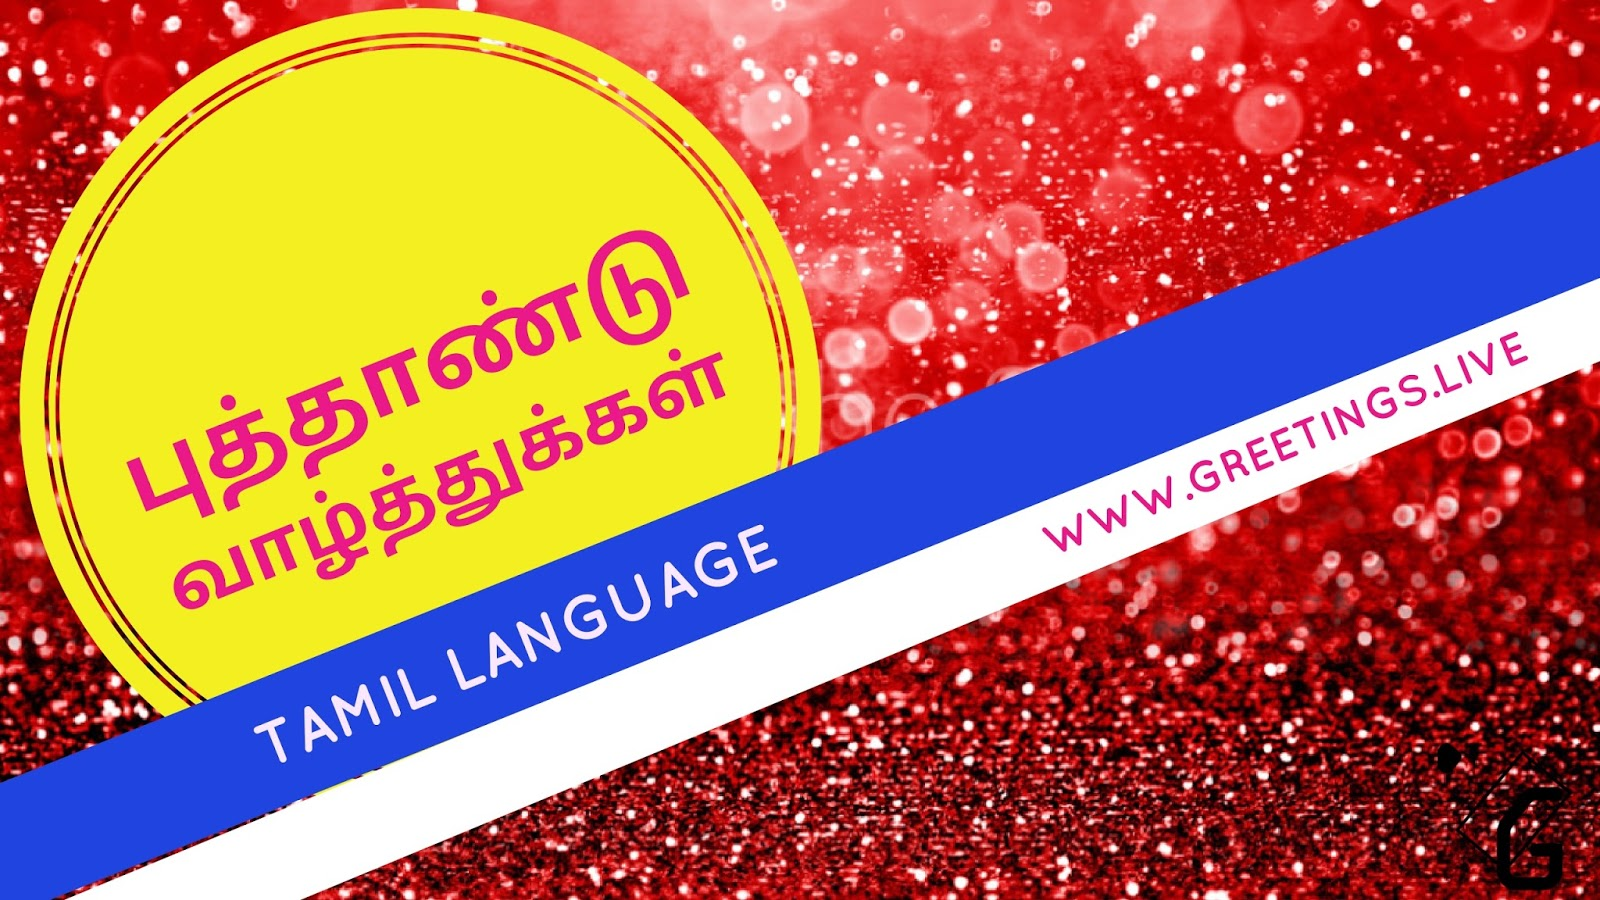 2018 New Year Wishes Greetings Greetings In Tamil Language 2018